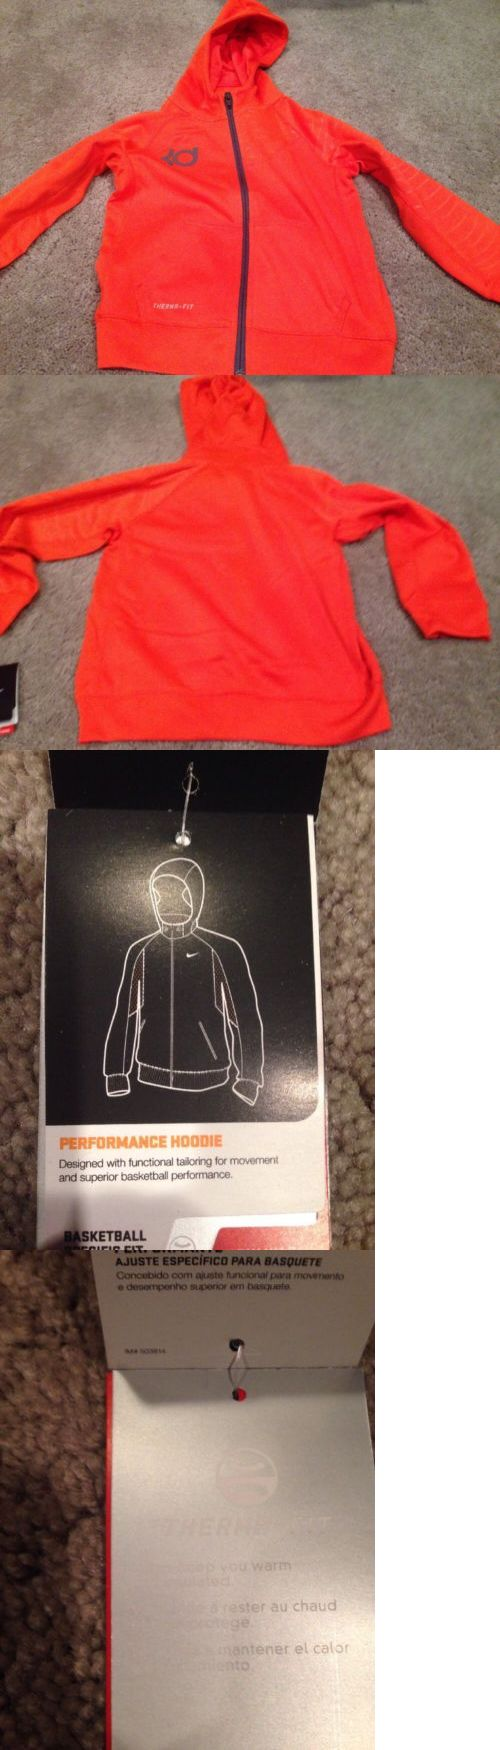 Youth 158967: Nike Kevin Durant Hoody Sweatshirt. Thermafit. Youth 7. Brand New -> BUY IT NOW ONLY: $34.99 on eBay!